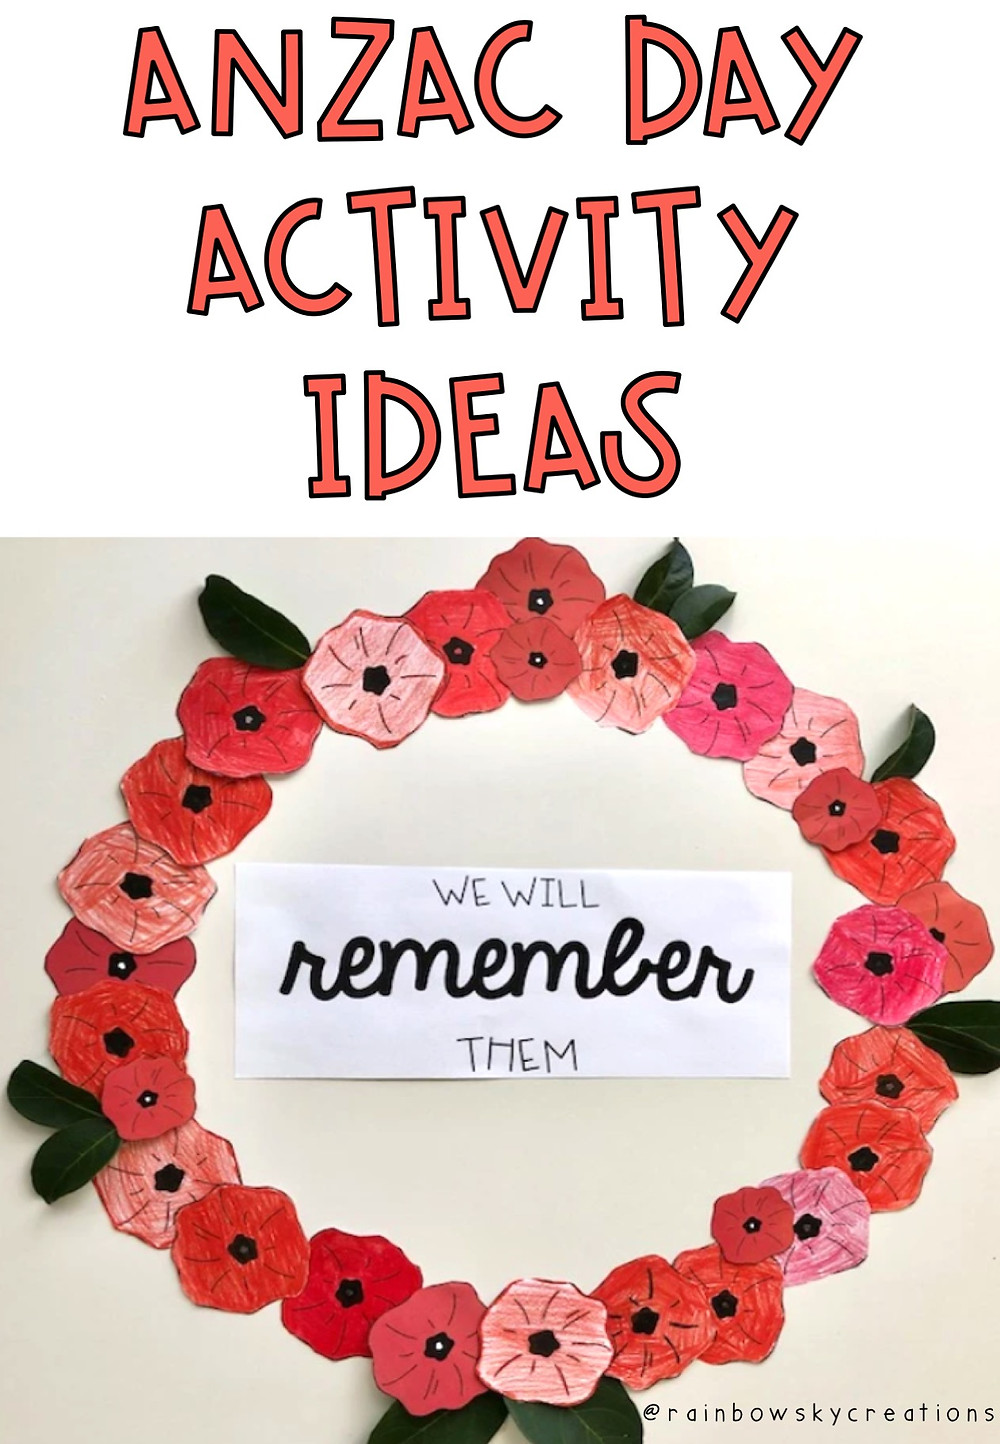 Anzac day activity ideas in red and an anzac wreath photograph